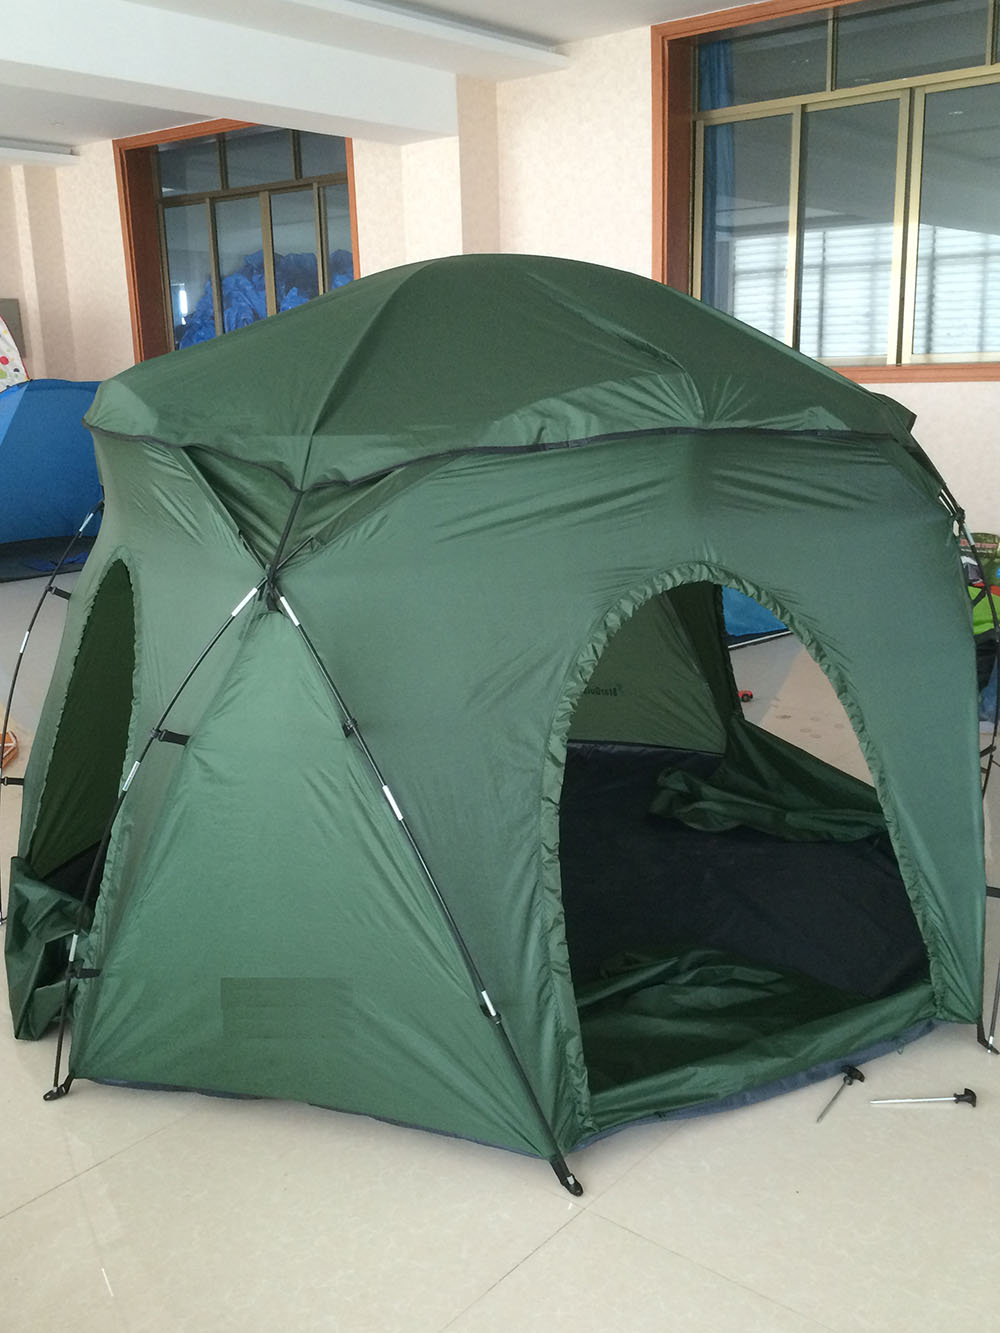 astronomy dome tents - photo #29